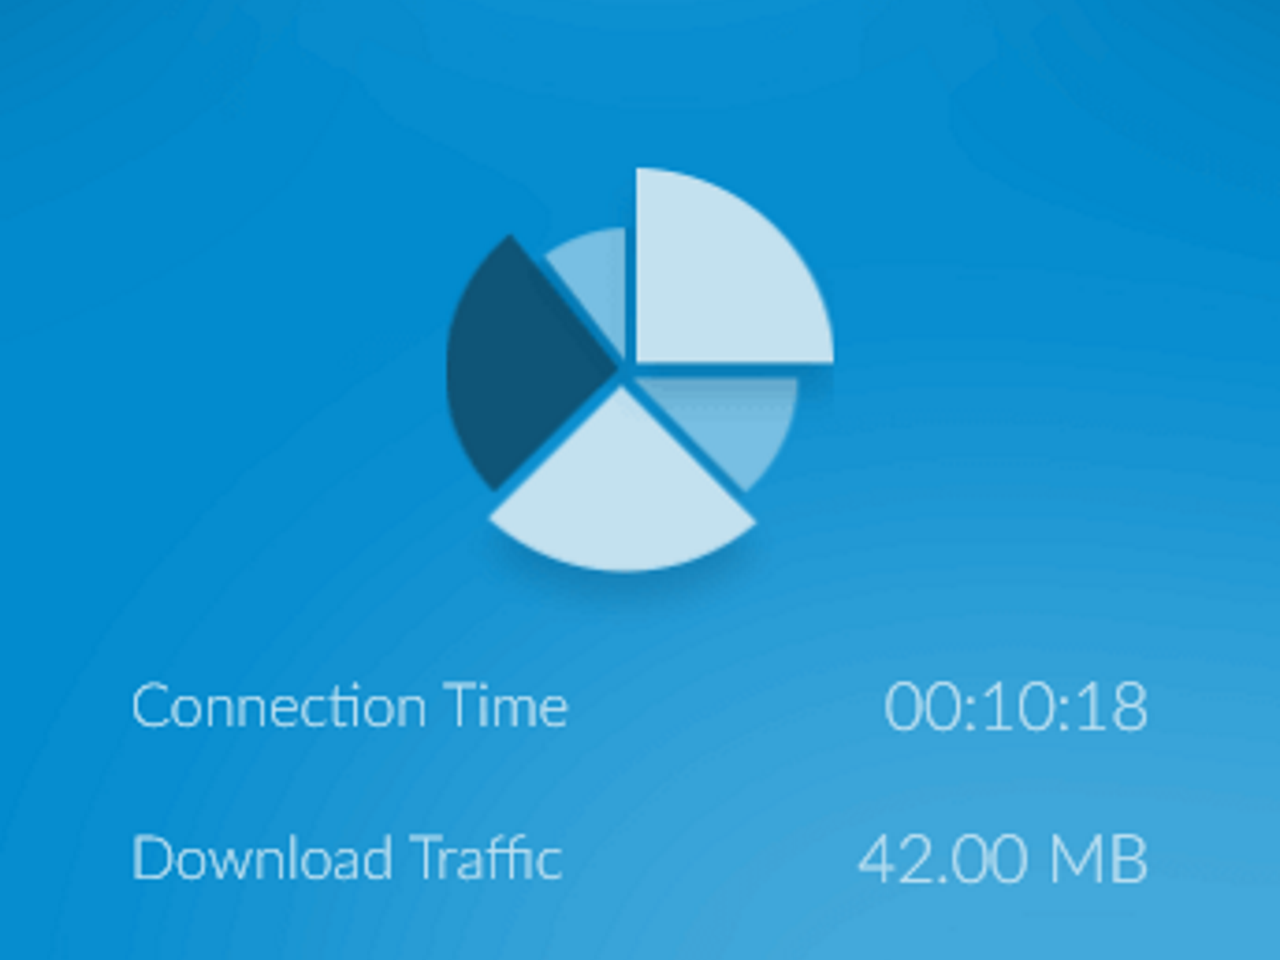 ZenMate's connection and traffic monitoring statistics